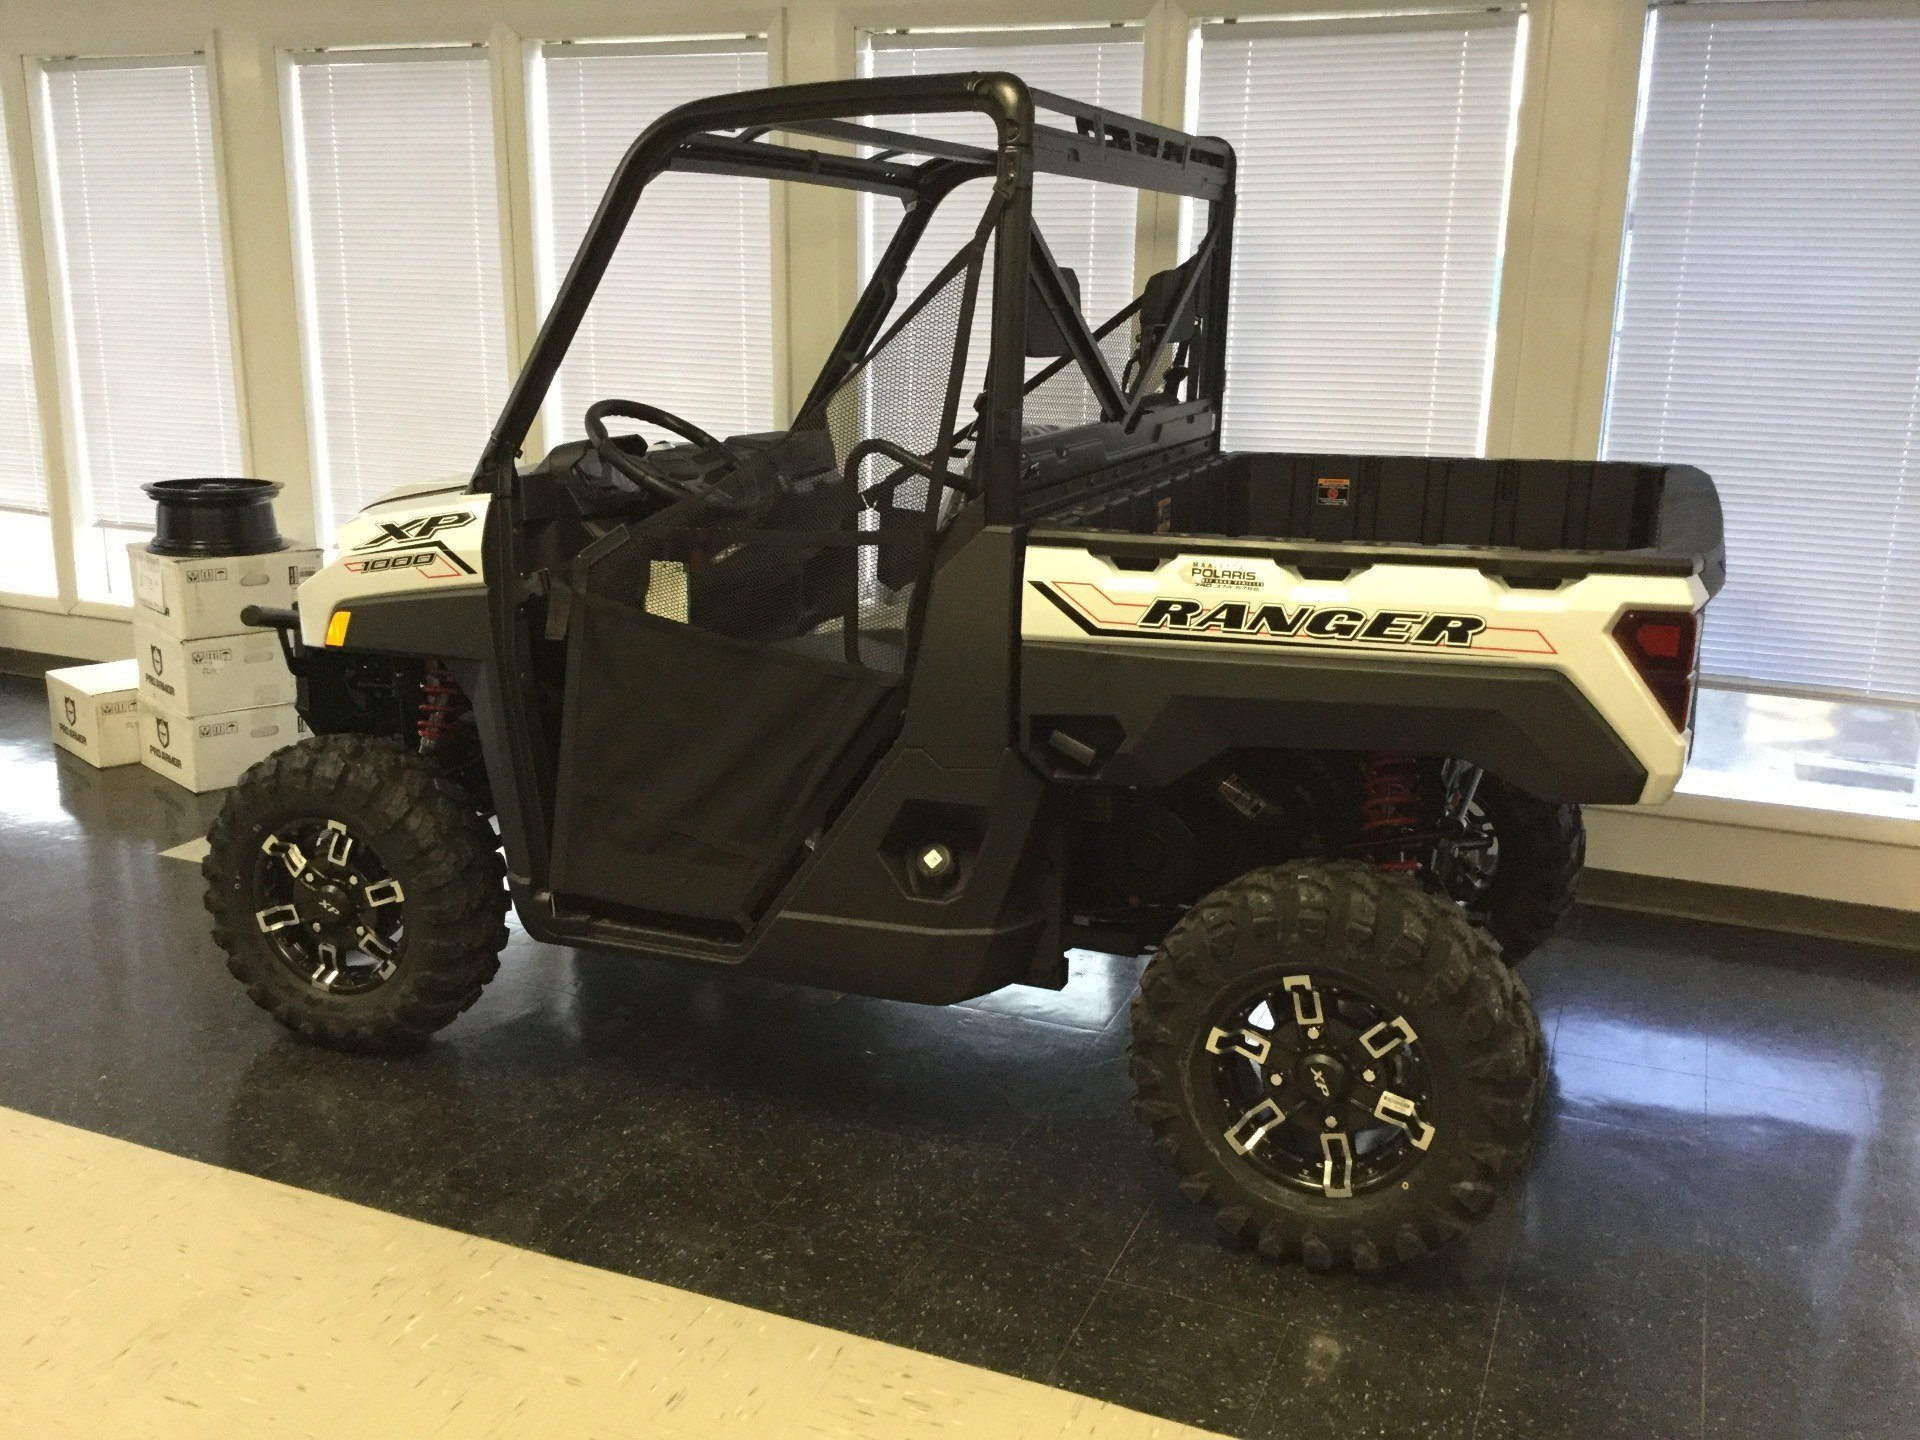 2021 Polaris Ranger XP 1000 Premium in Marietta, Ohio - Photo 2